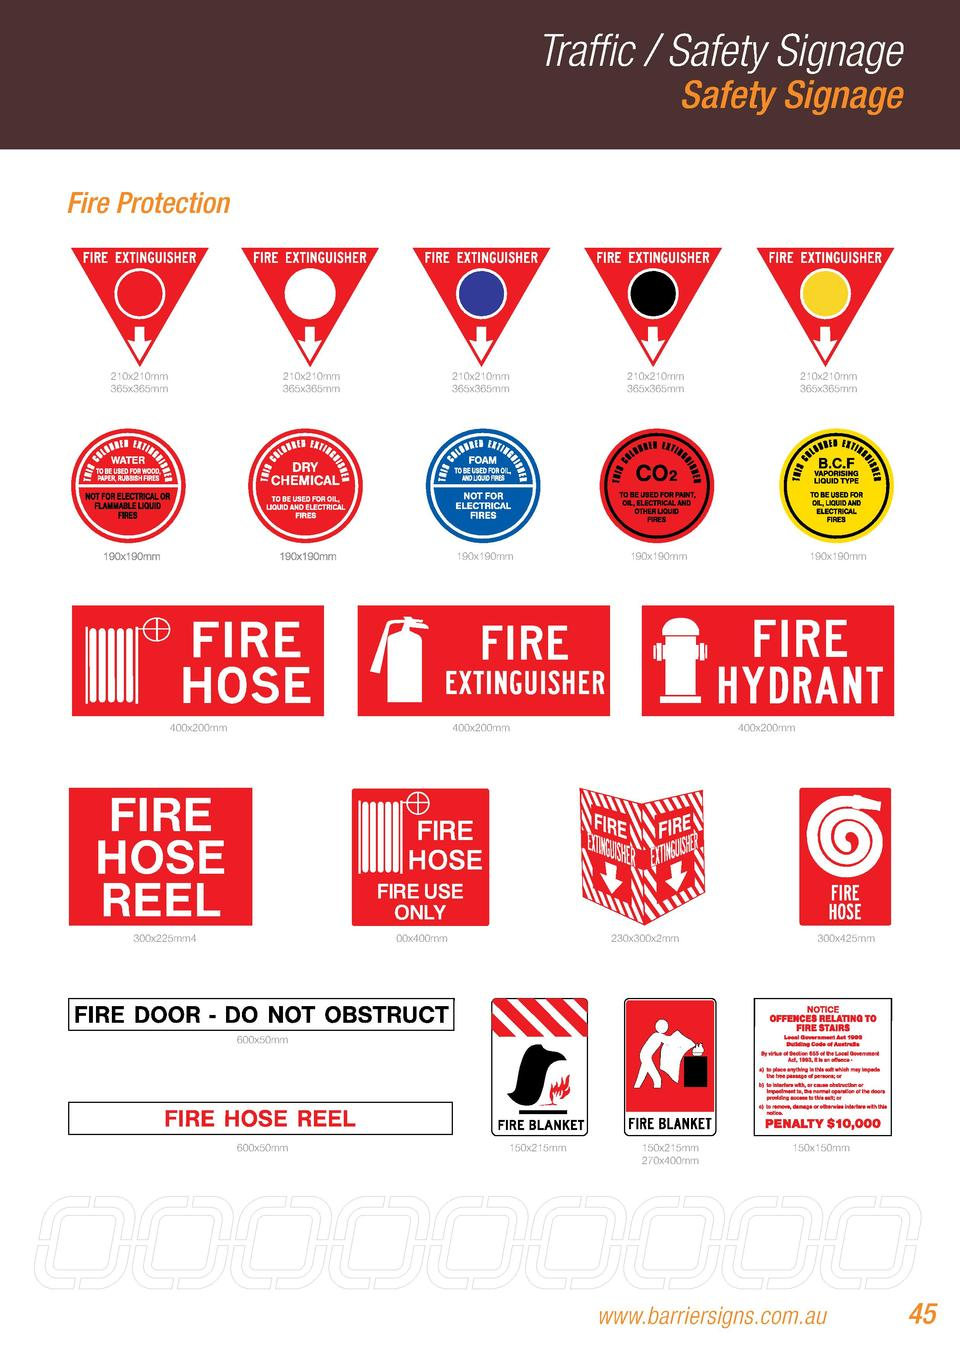 Traffic   Safety Signage Safety Signage  Fire Protection  210x210mm 365x365mm  210x210mm 365x365mm  210x210mm 365x365mm  1...